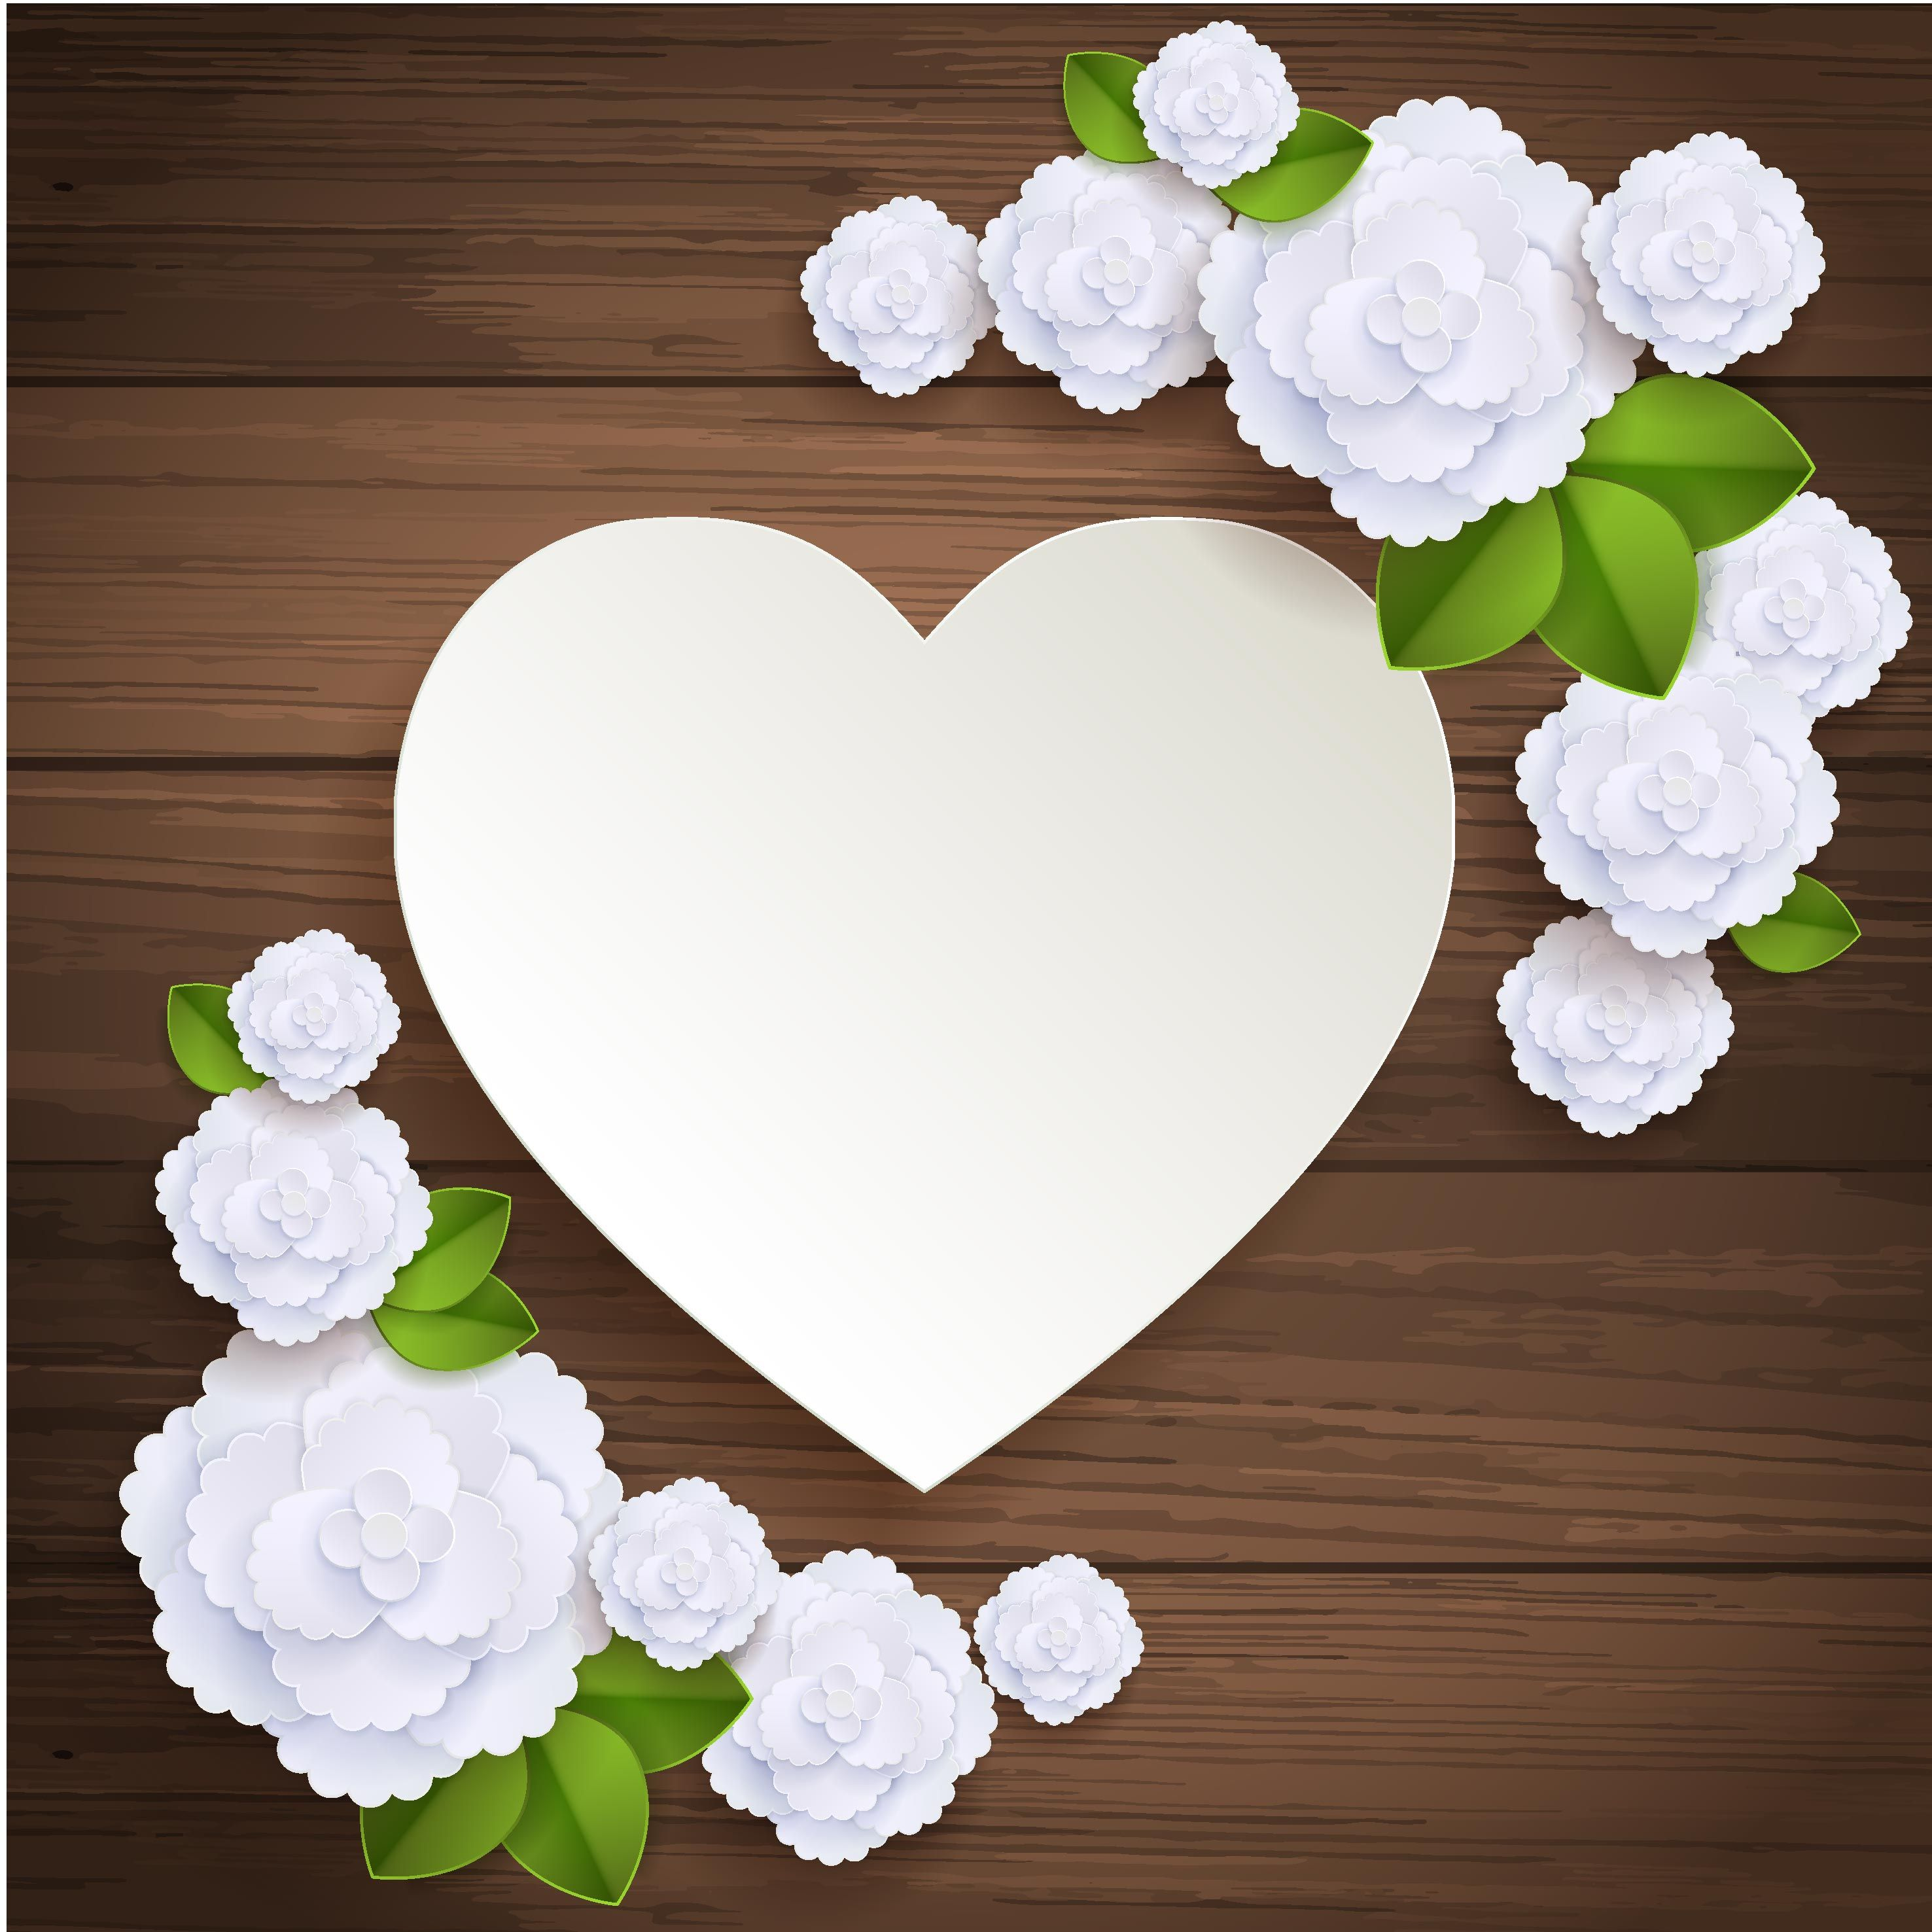 Heart Shaped White Flowers Hand Painted Wooden Background Flower Background Wallpaper White Flower Background Flower Backgrounds